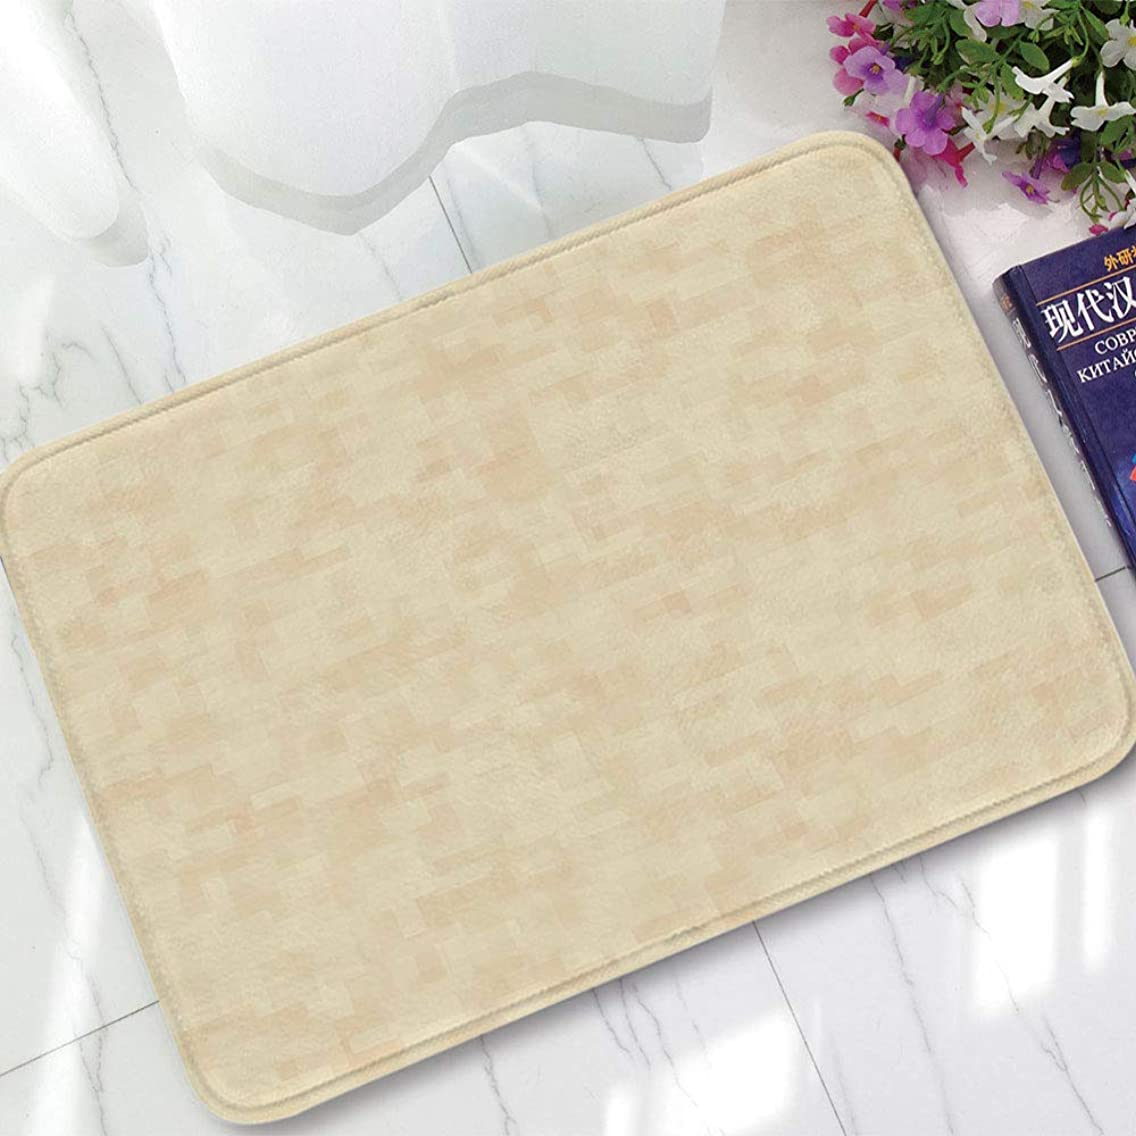 YOLIYANA Non-Slip Mat,Ivory,for Bathroom Kitchen Bedroom,15.75